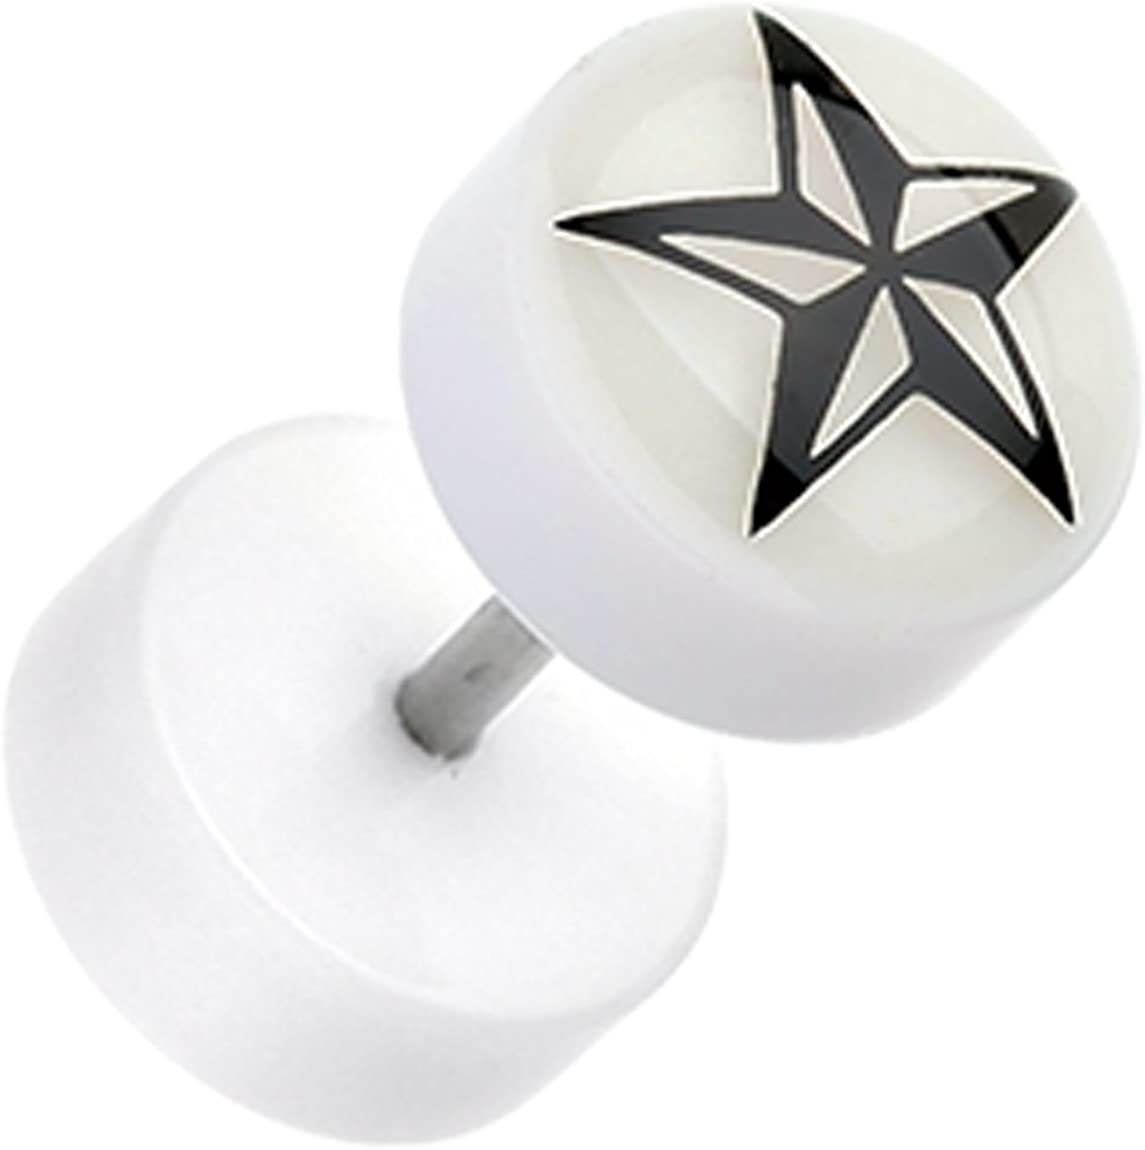 Glow in the Dark Nautical Star Acrylic a Max 46% OFF Pai Sold as Topics on TV Plug Fake -